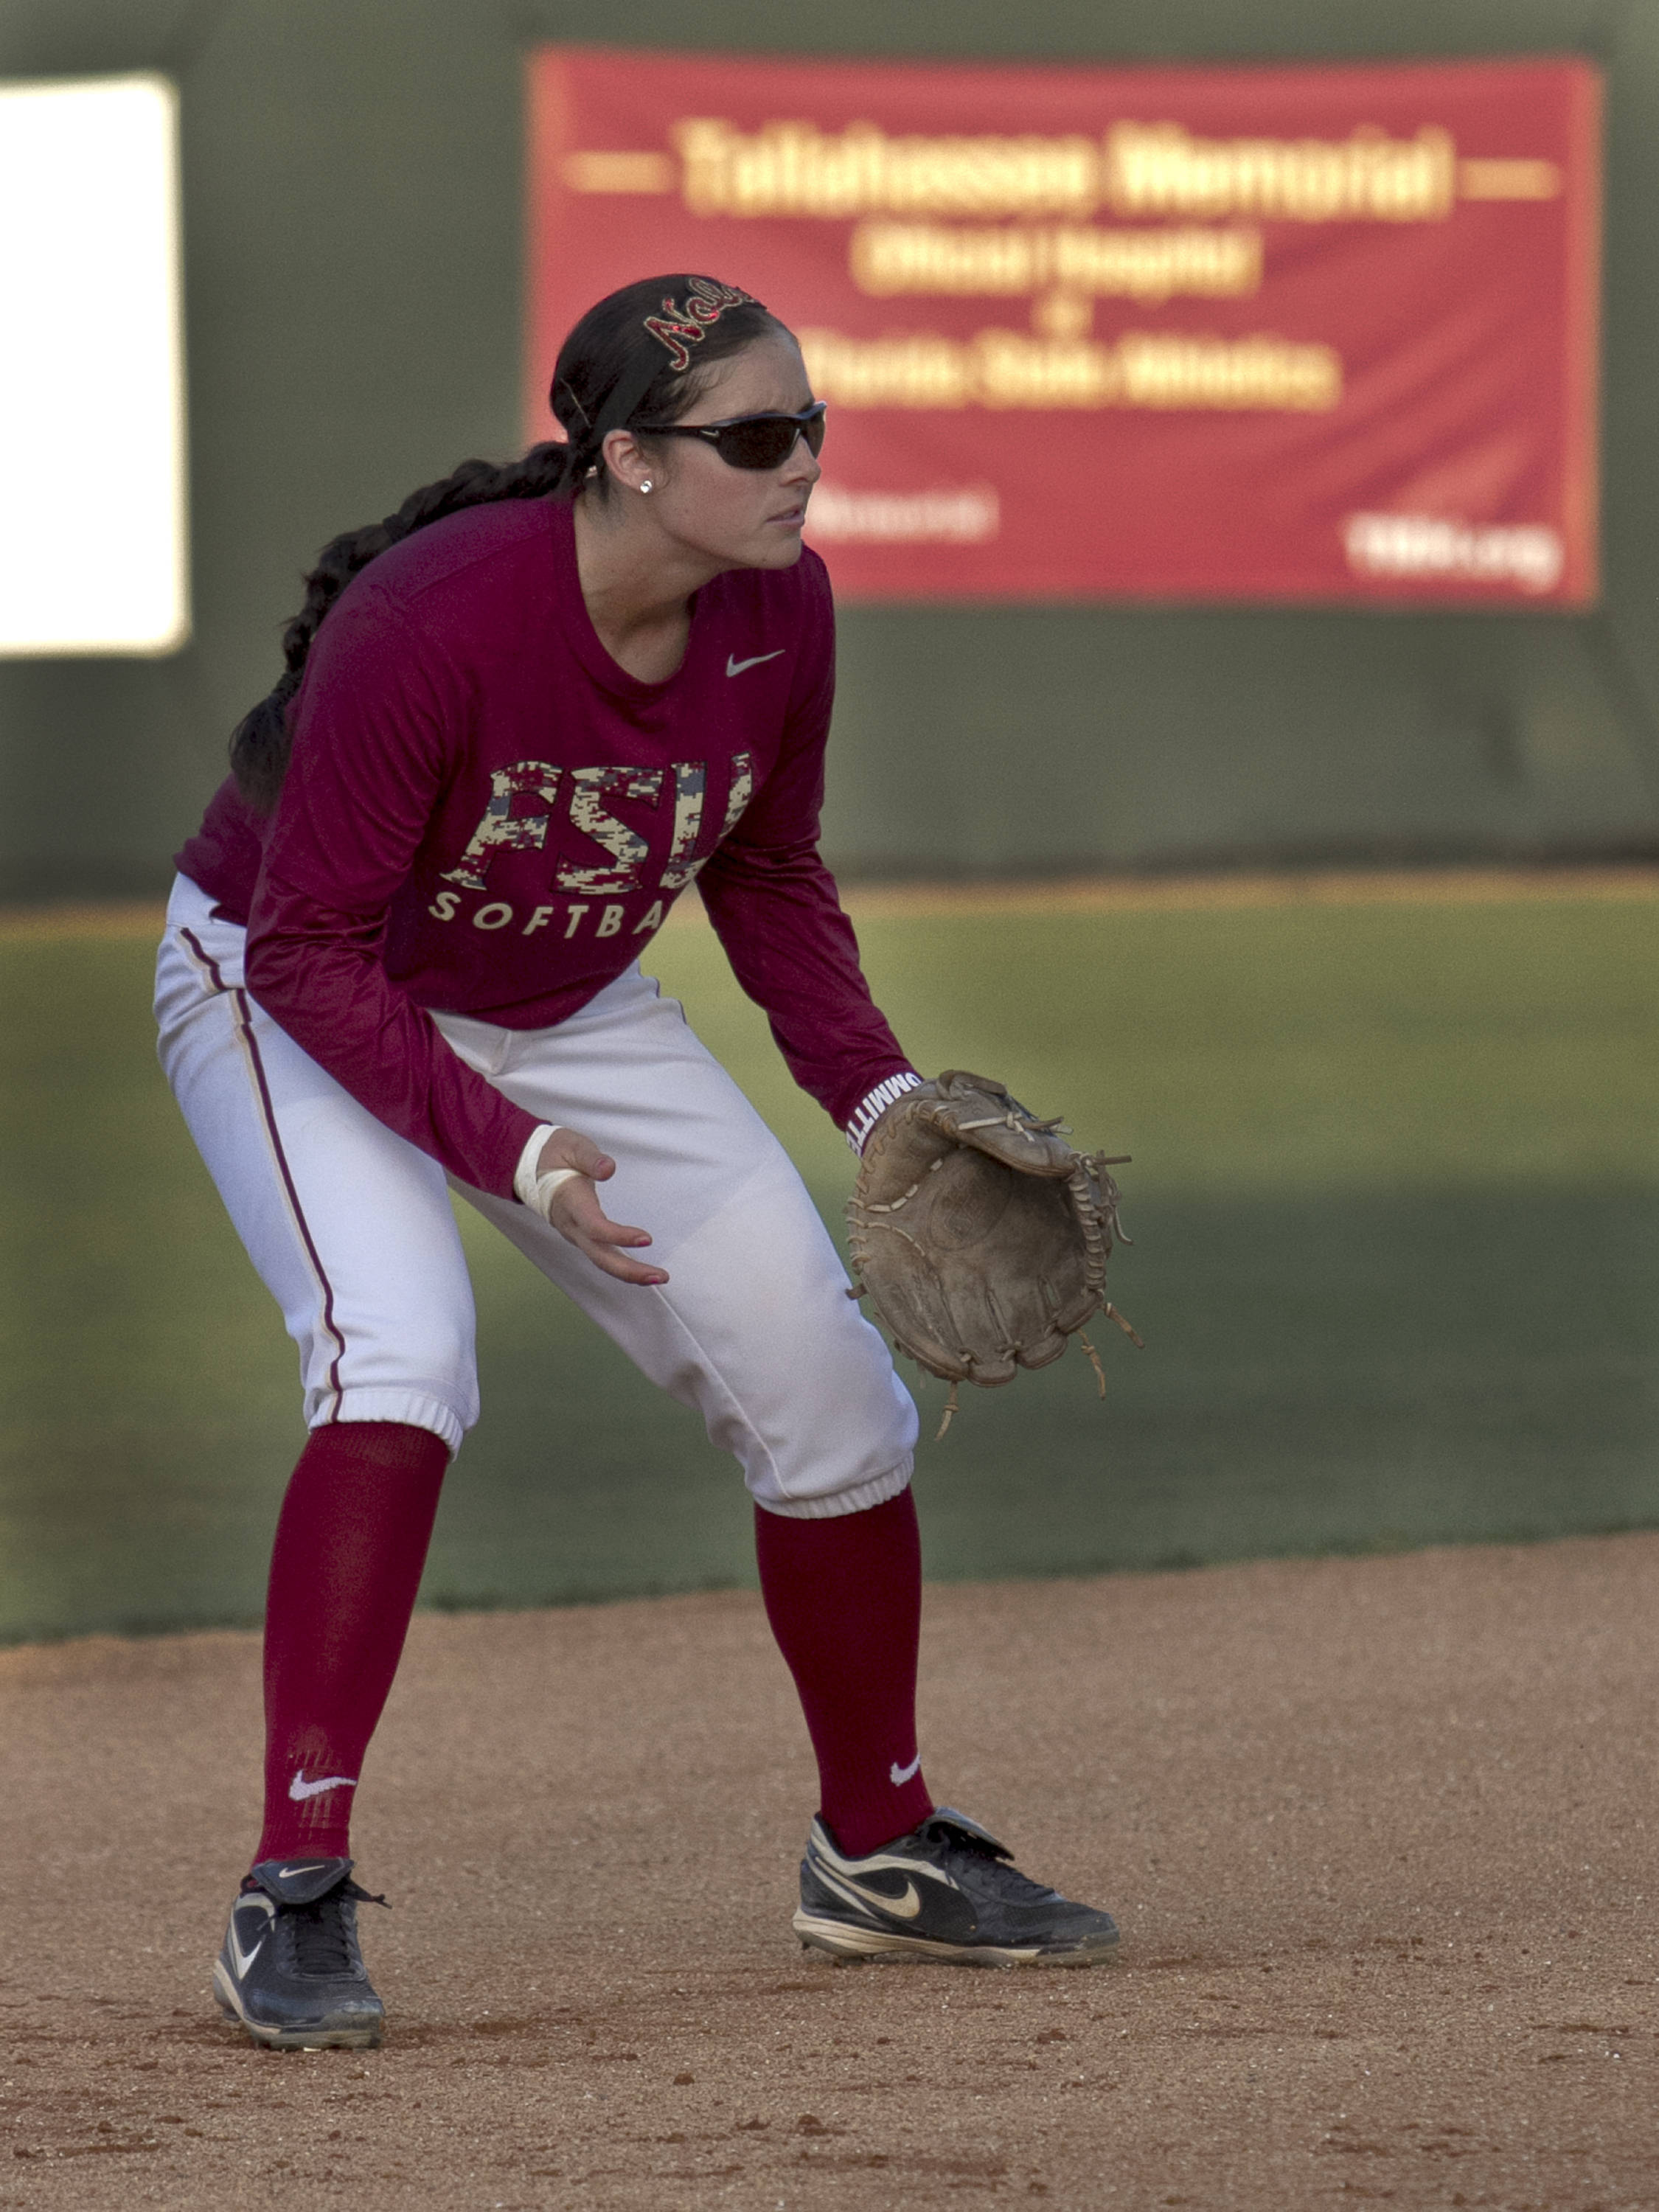 Maddie O'Brien, FSU Softball vs NC,  04/02/2012